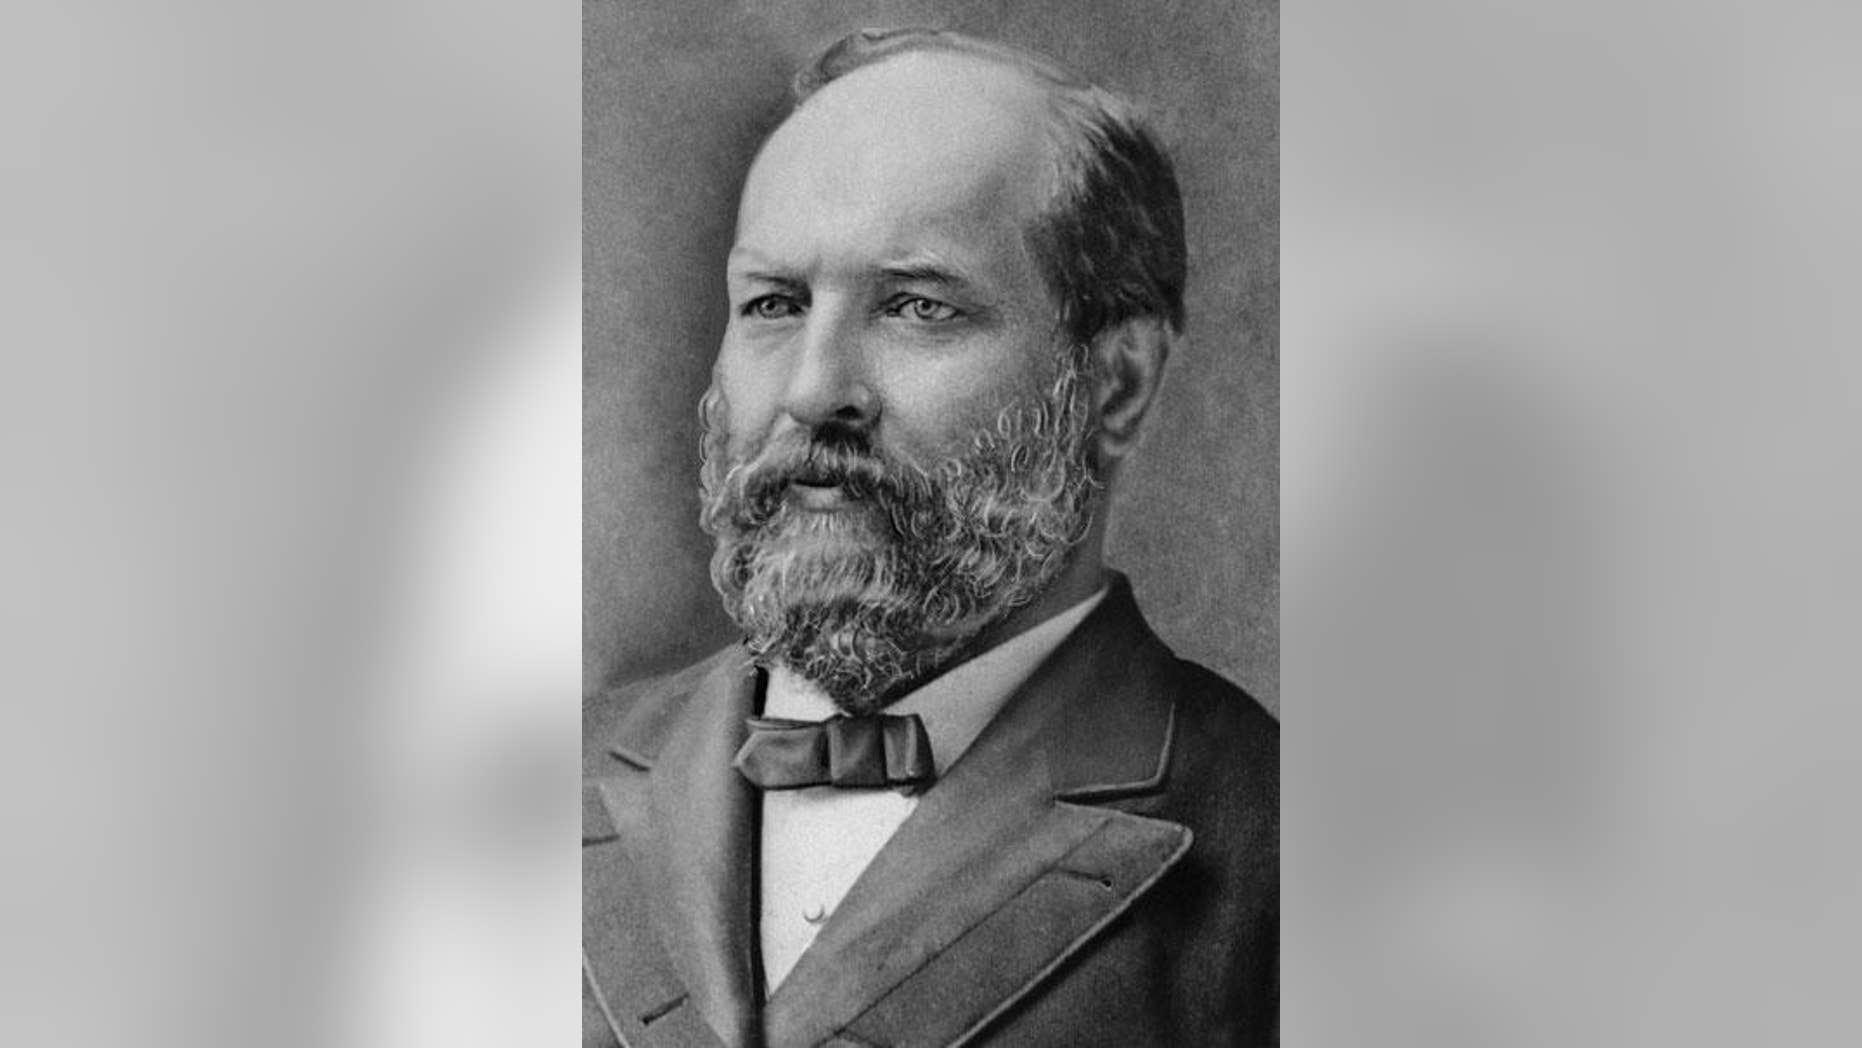 Westlake Legal Group 120606_james_garfield_ap_328_605 This Day in History: Sept. 19 fox-news/us/this-day-in-history fox news fnc/us fnc e73eec3a-9e1a-5bf0-91dd-f4a70c854d66 article